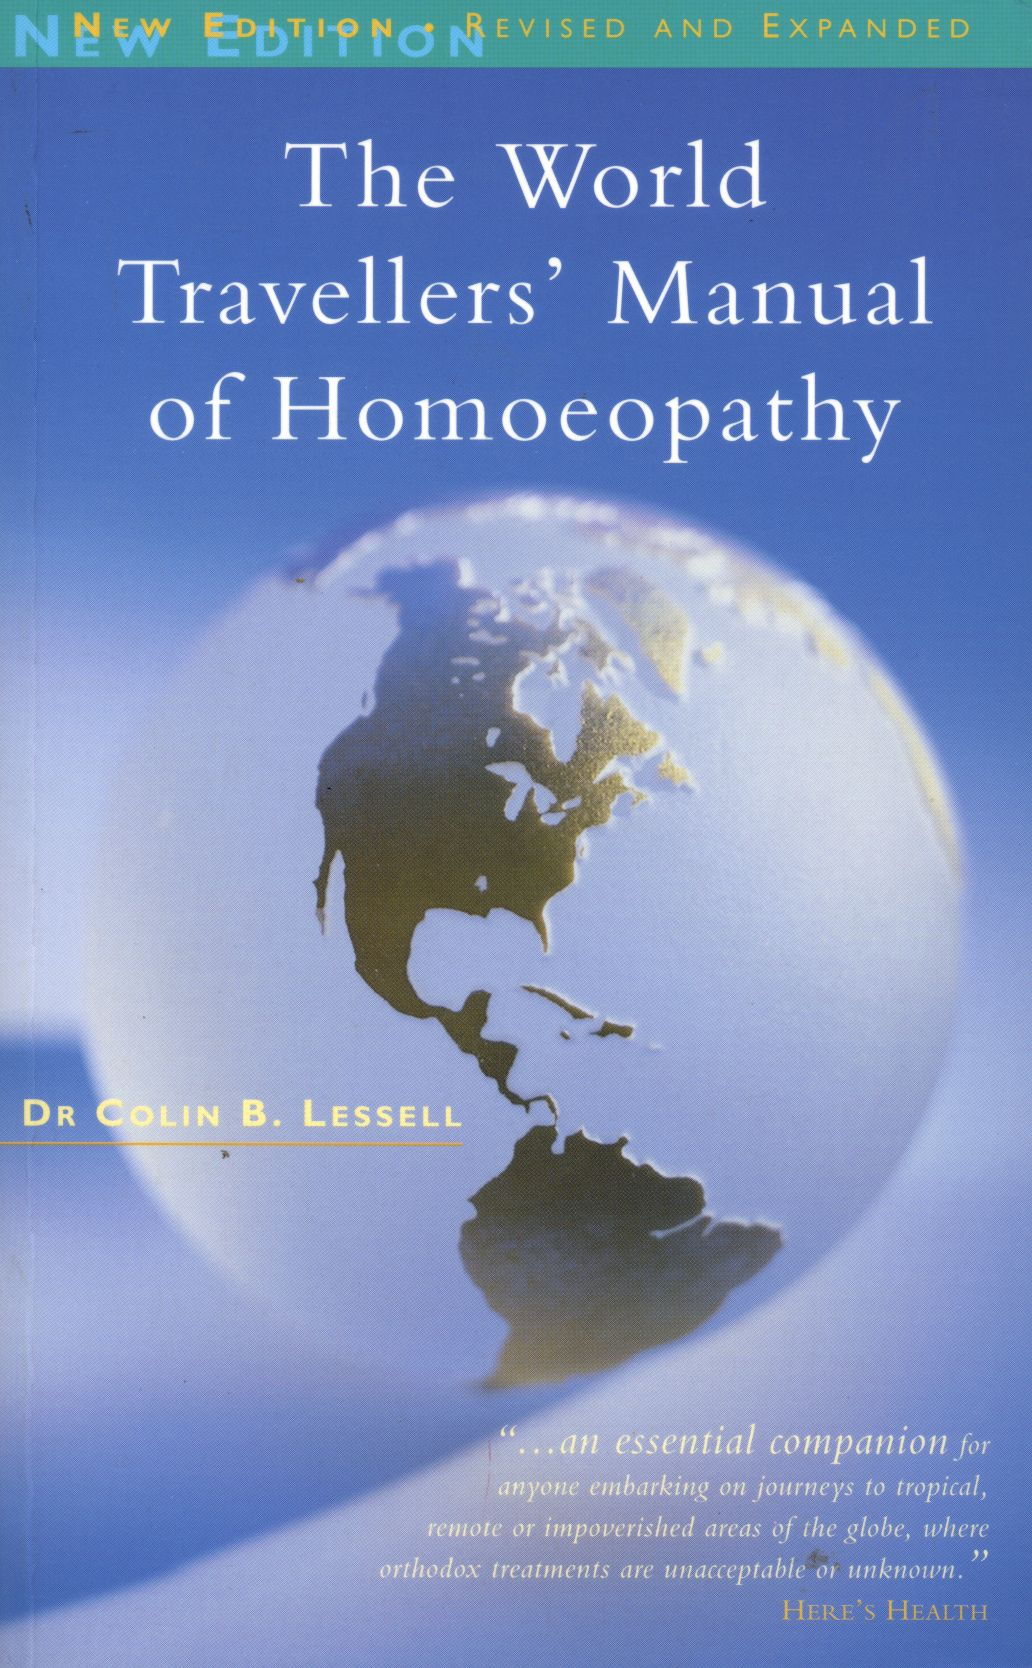 The World Travellers' Manual of Homoeopathy